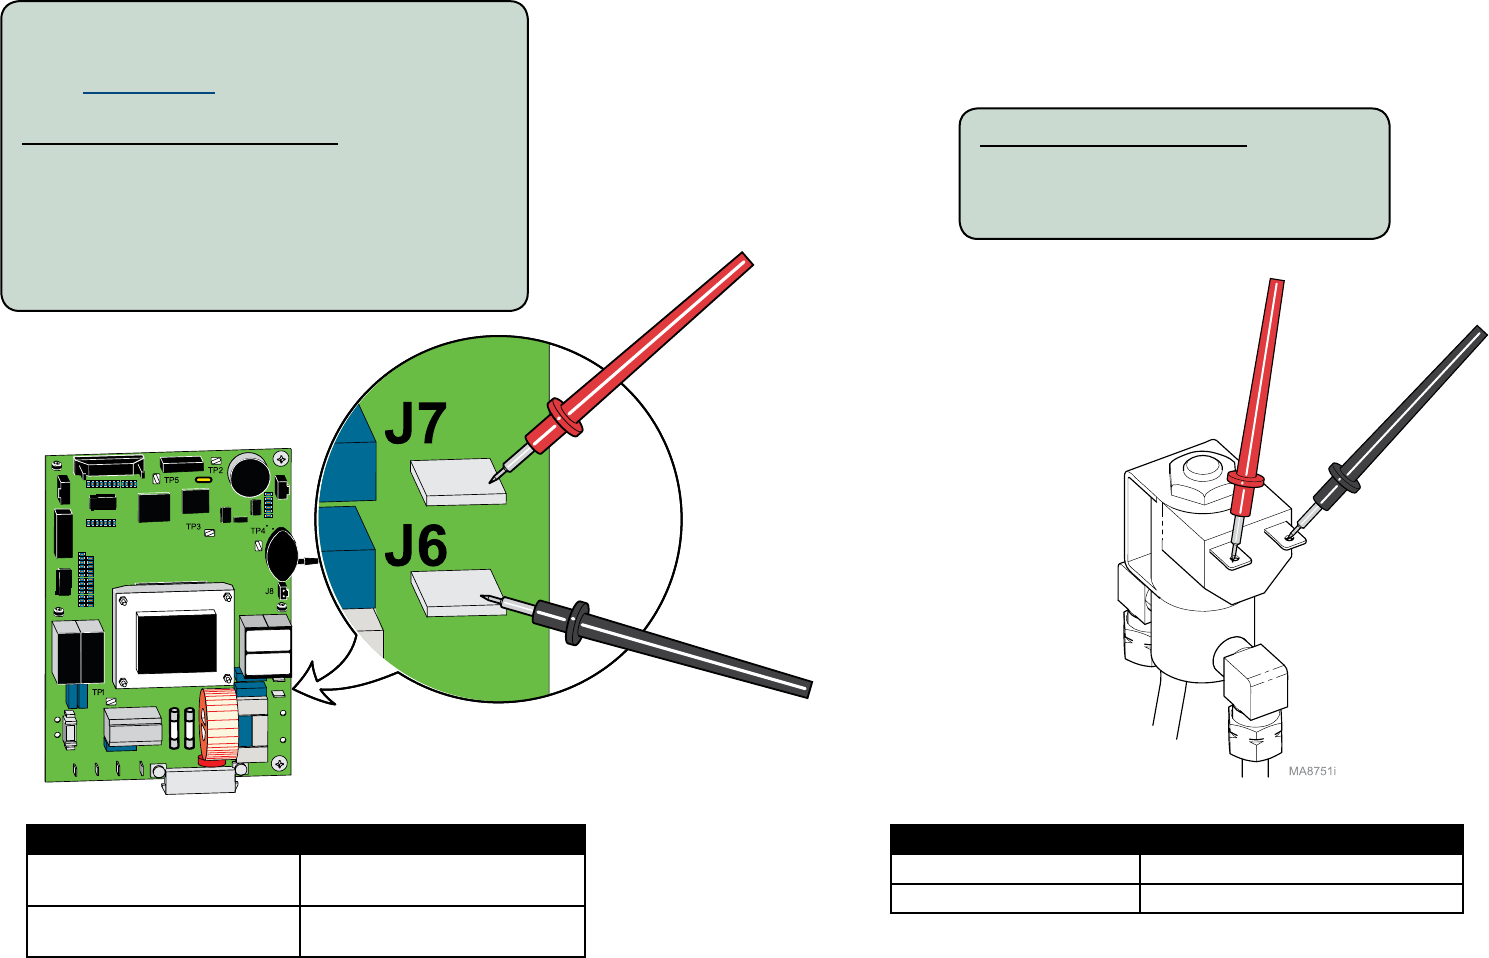 004 1032 00m9 M11 033 034 Ultraclave Sterilizertroubleshooting Midmark Wiring Diagram English 83 00